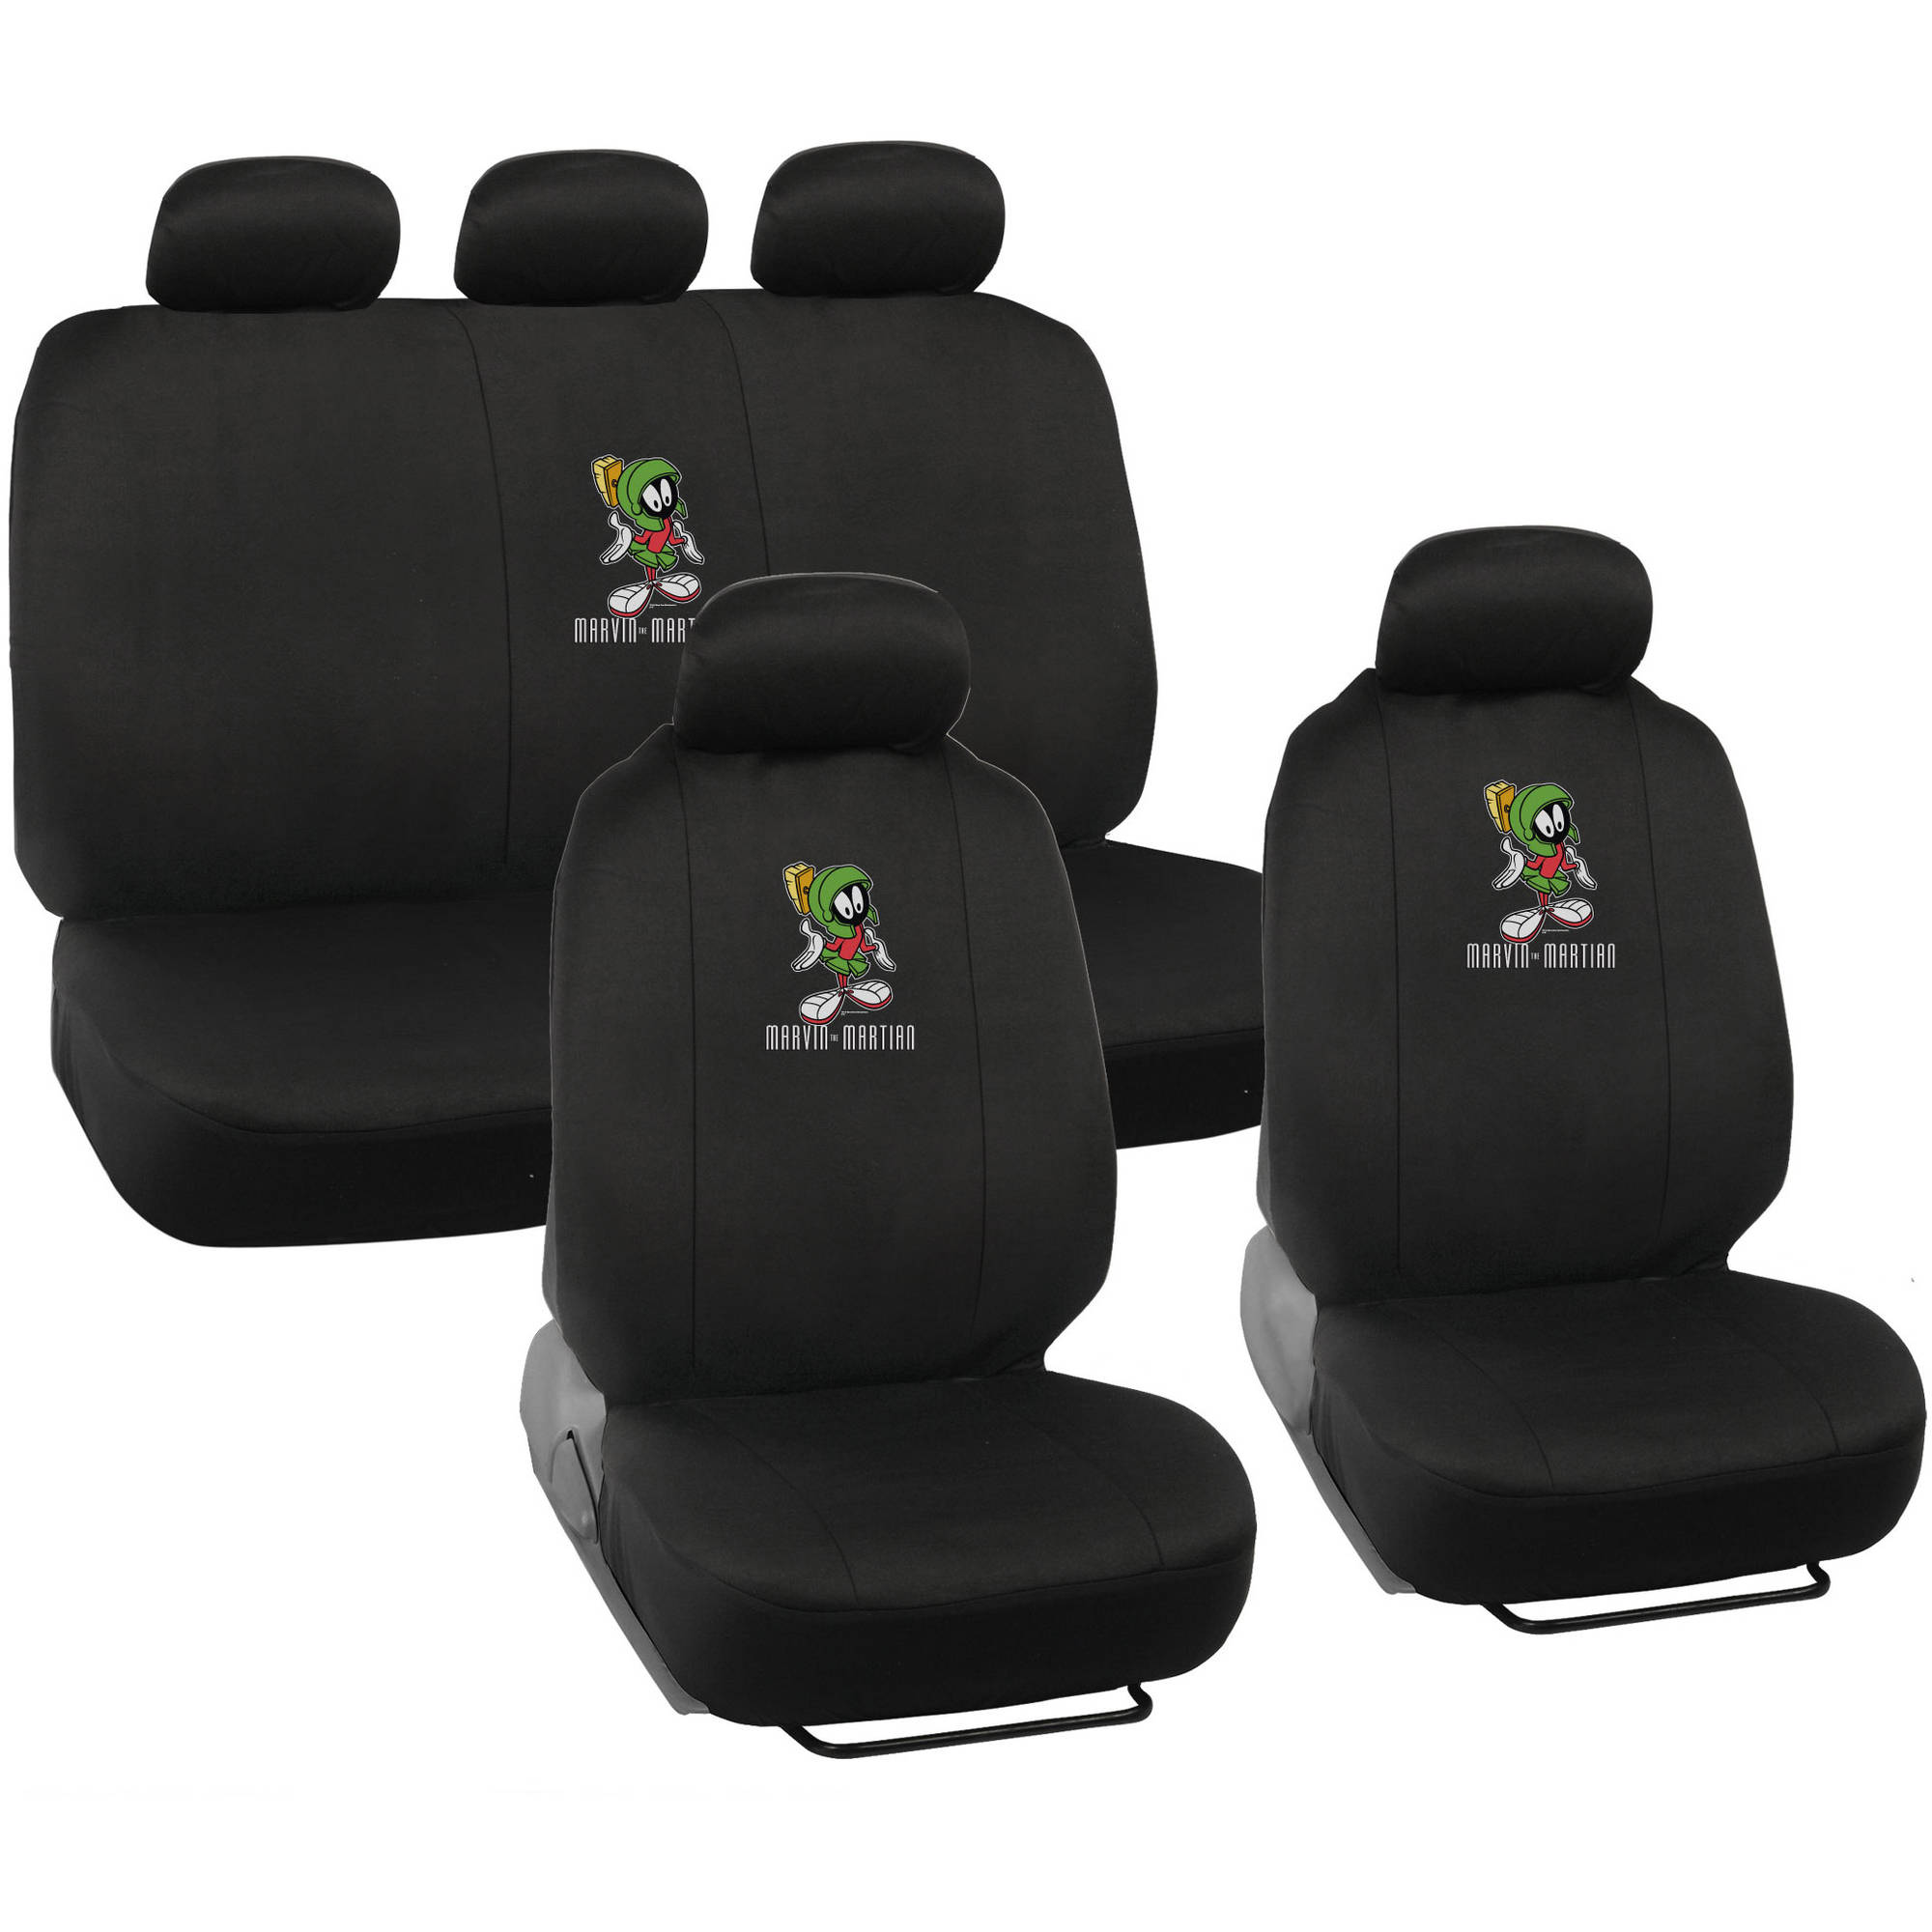 Warner Brothers Marvin the Martian Seat Covers for Car, Looney Tunes Auto Accessories, Universal Fit